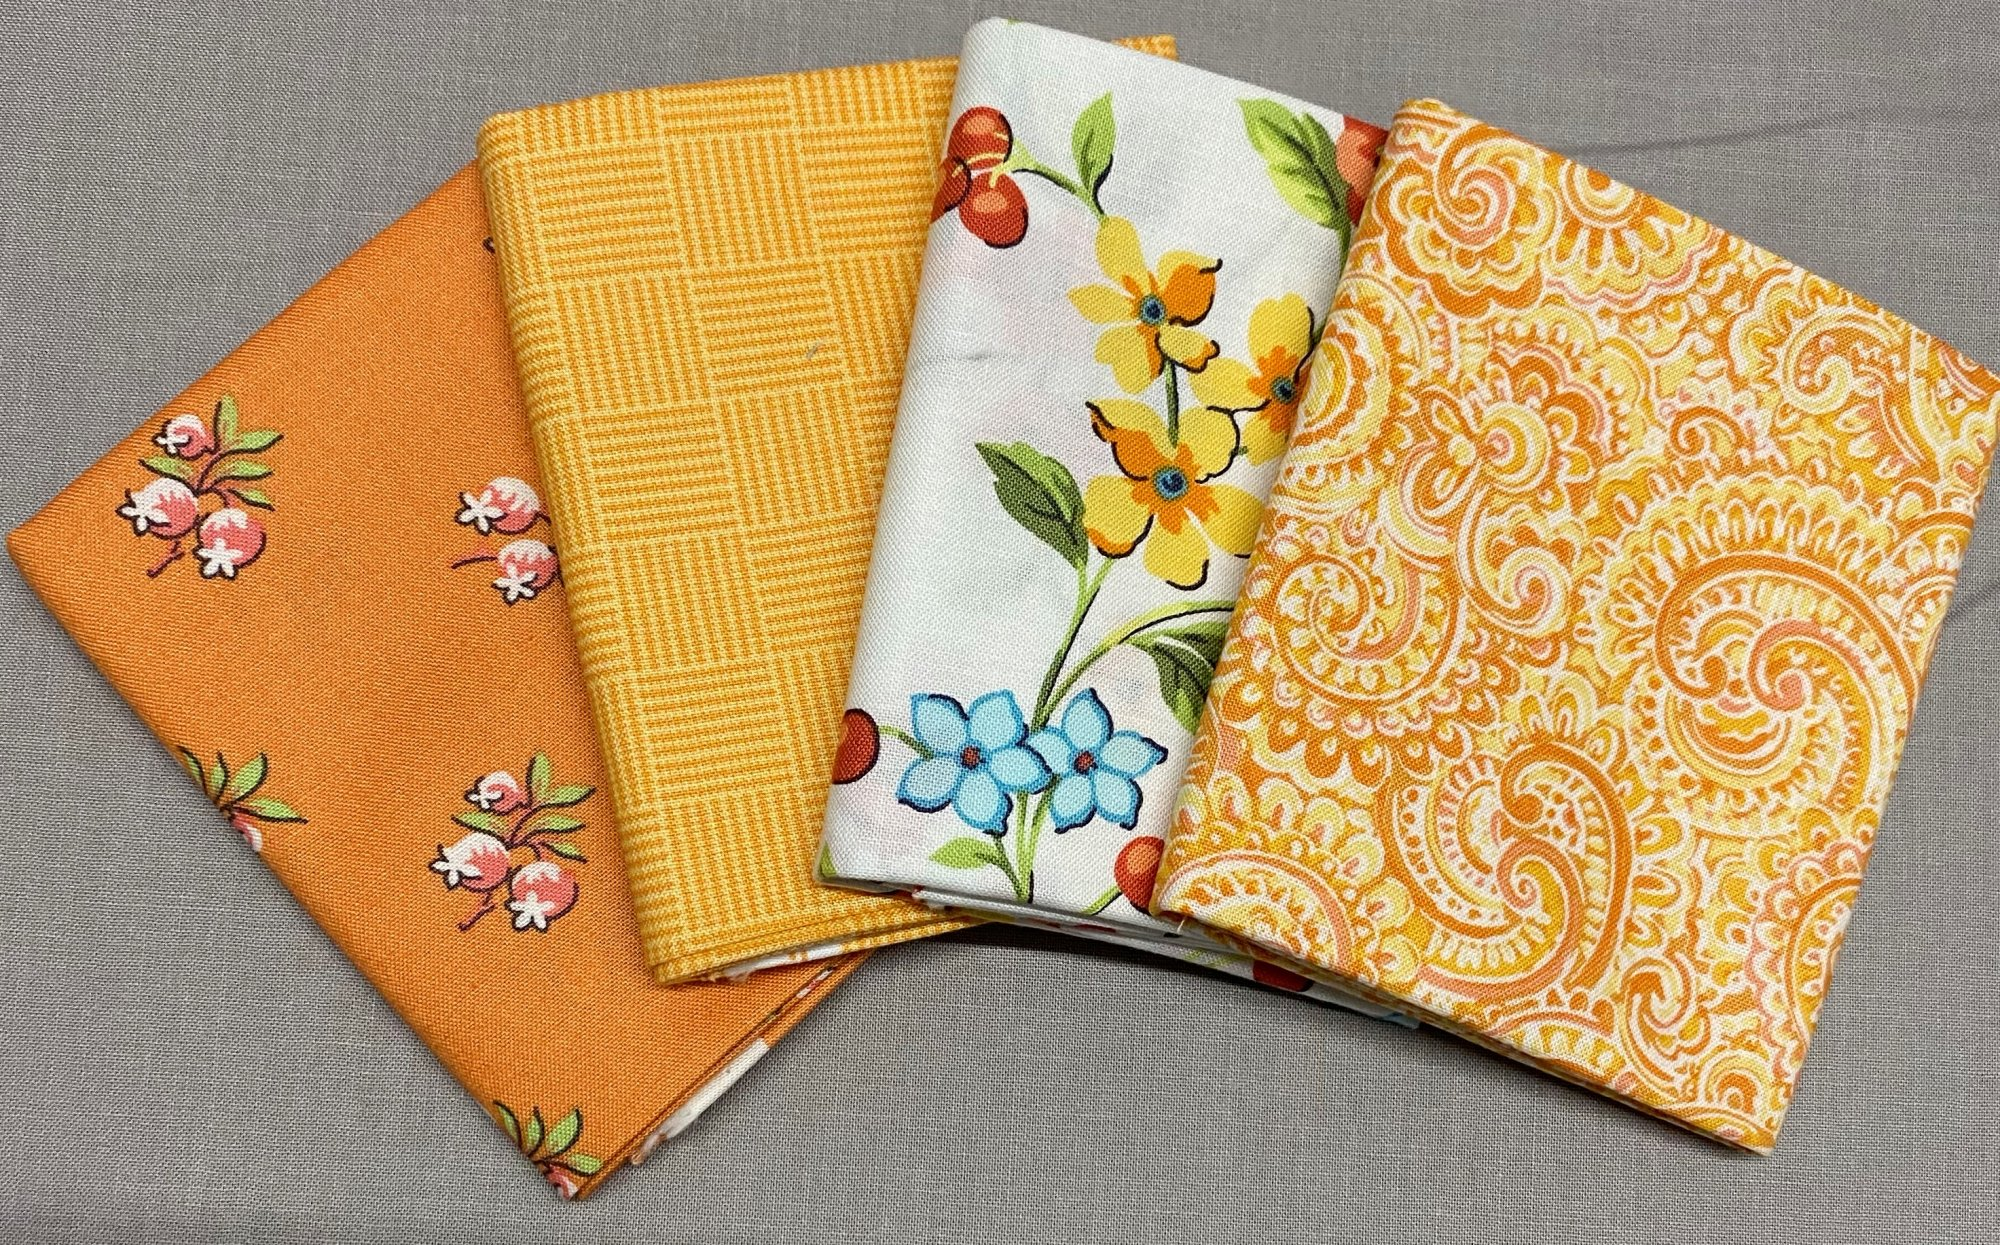 Roseberry Cottage Fat Quarter Bundle Andover Fabrics 108